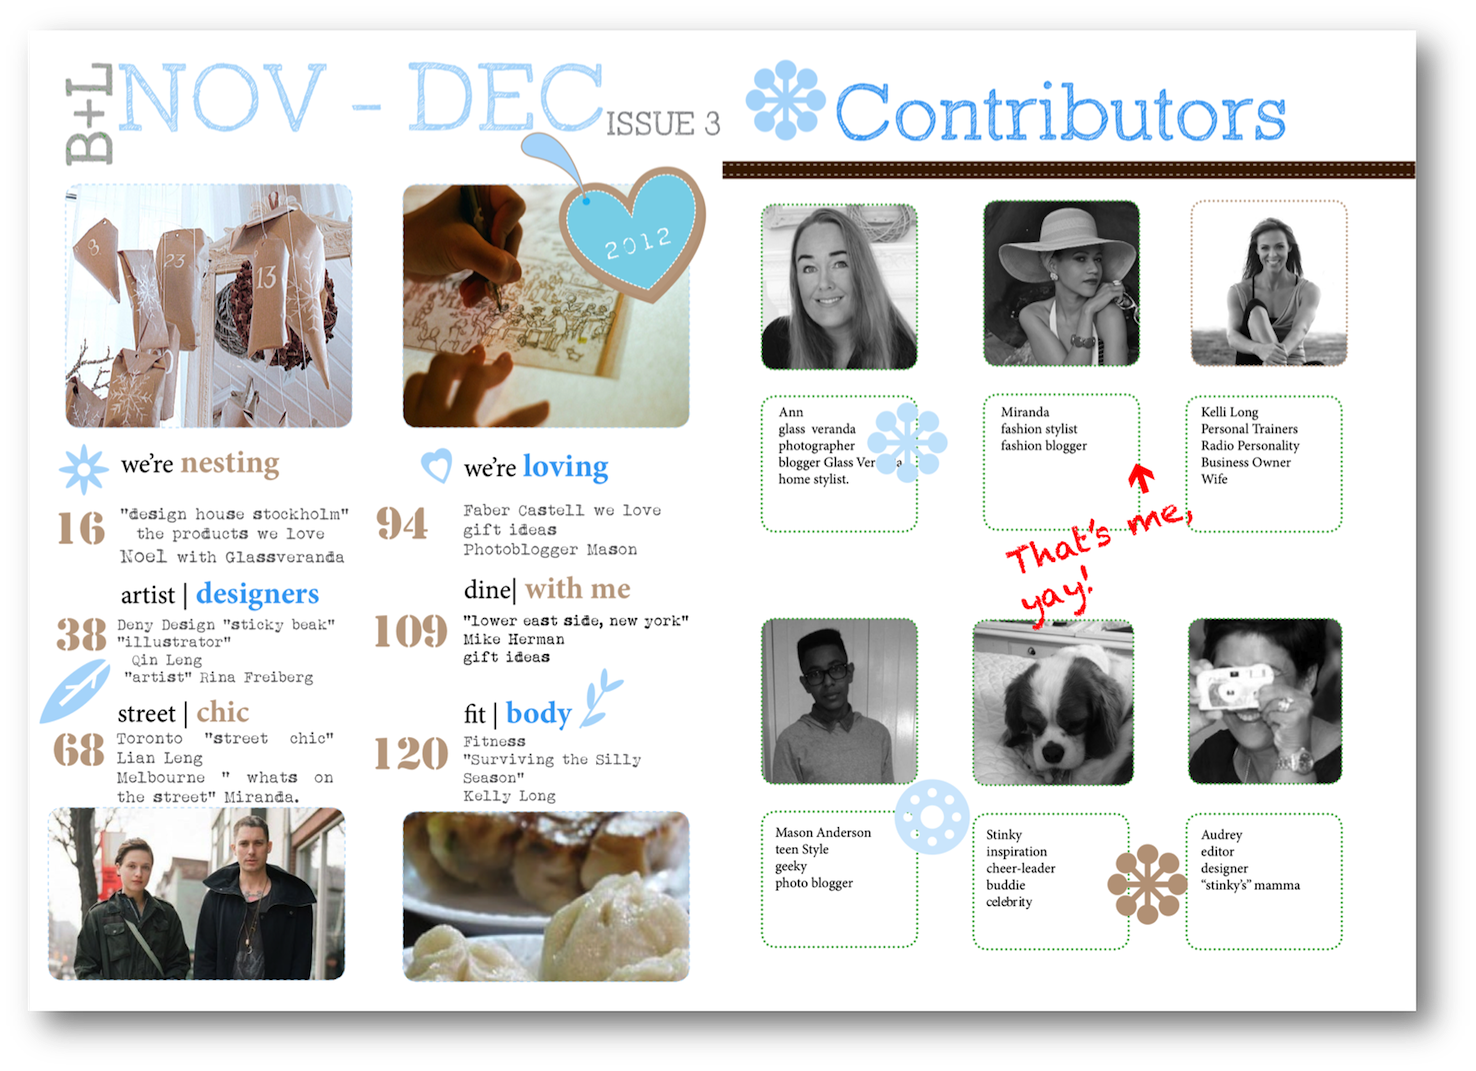 Bloggers who contribute to magazines